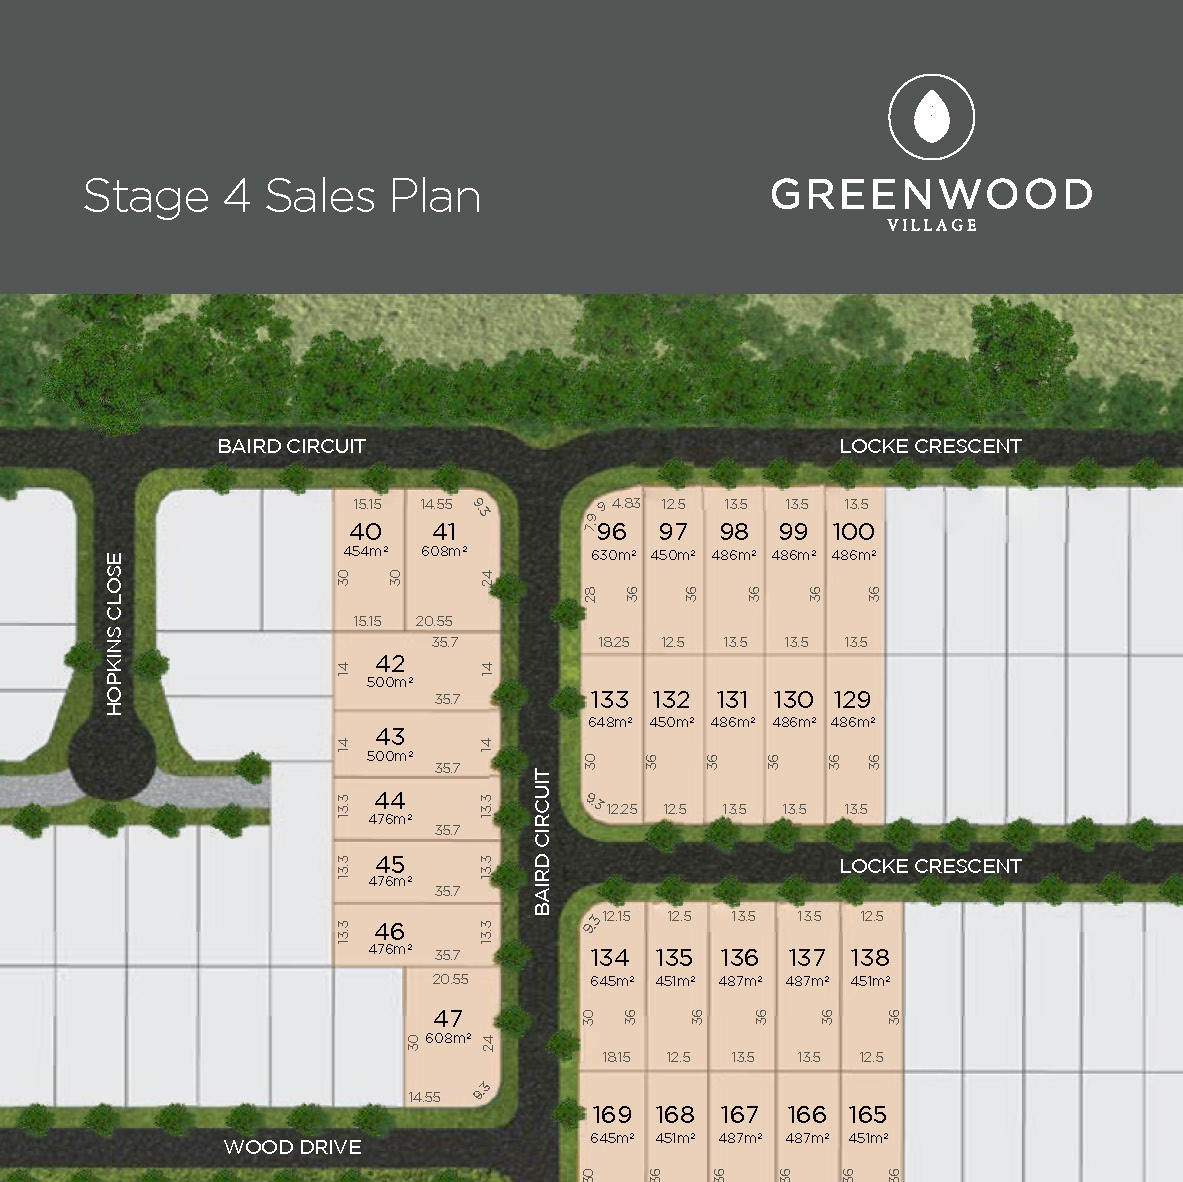 181114 Greenwood Village Stage 4 Plan.jpg